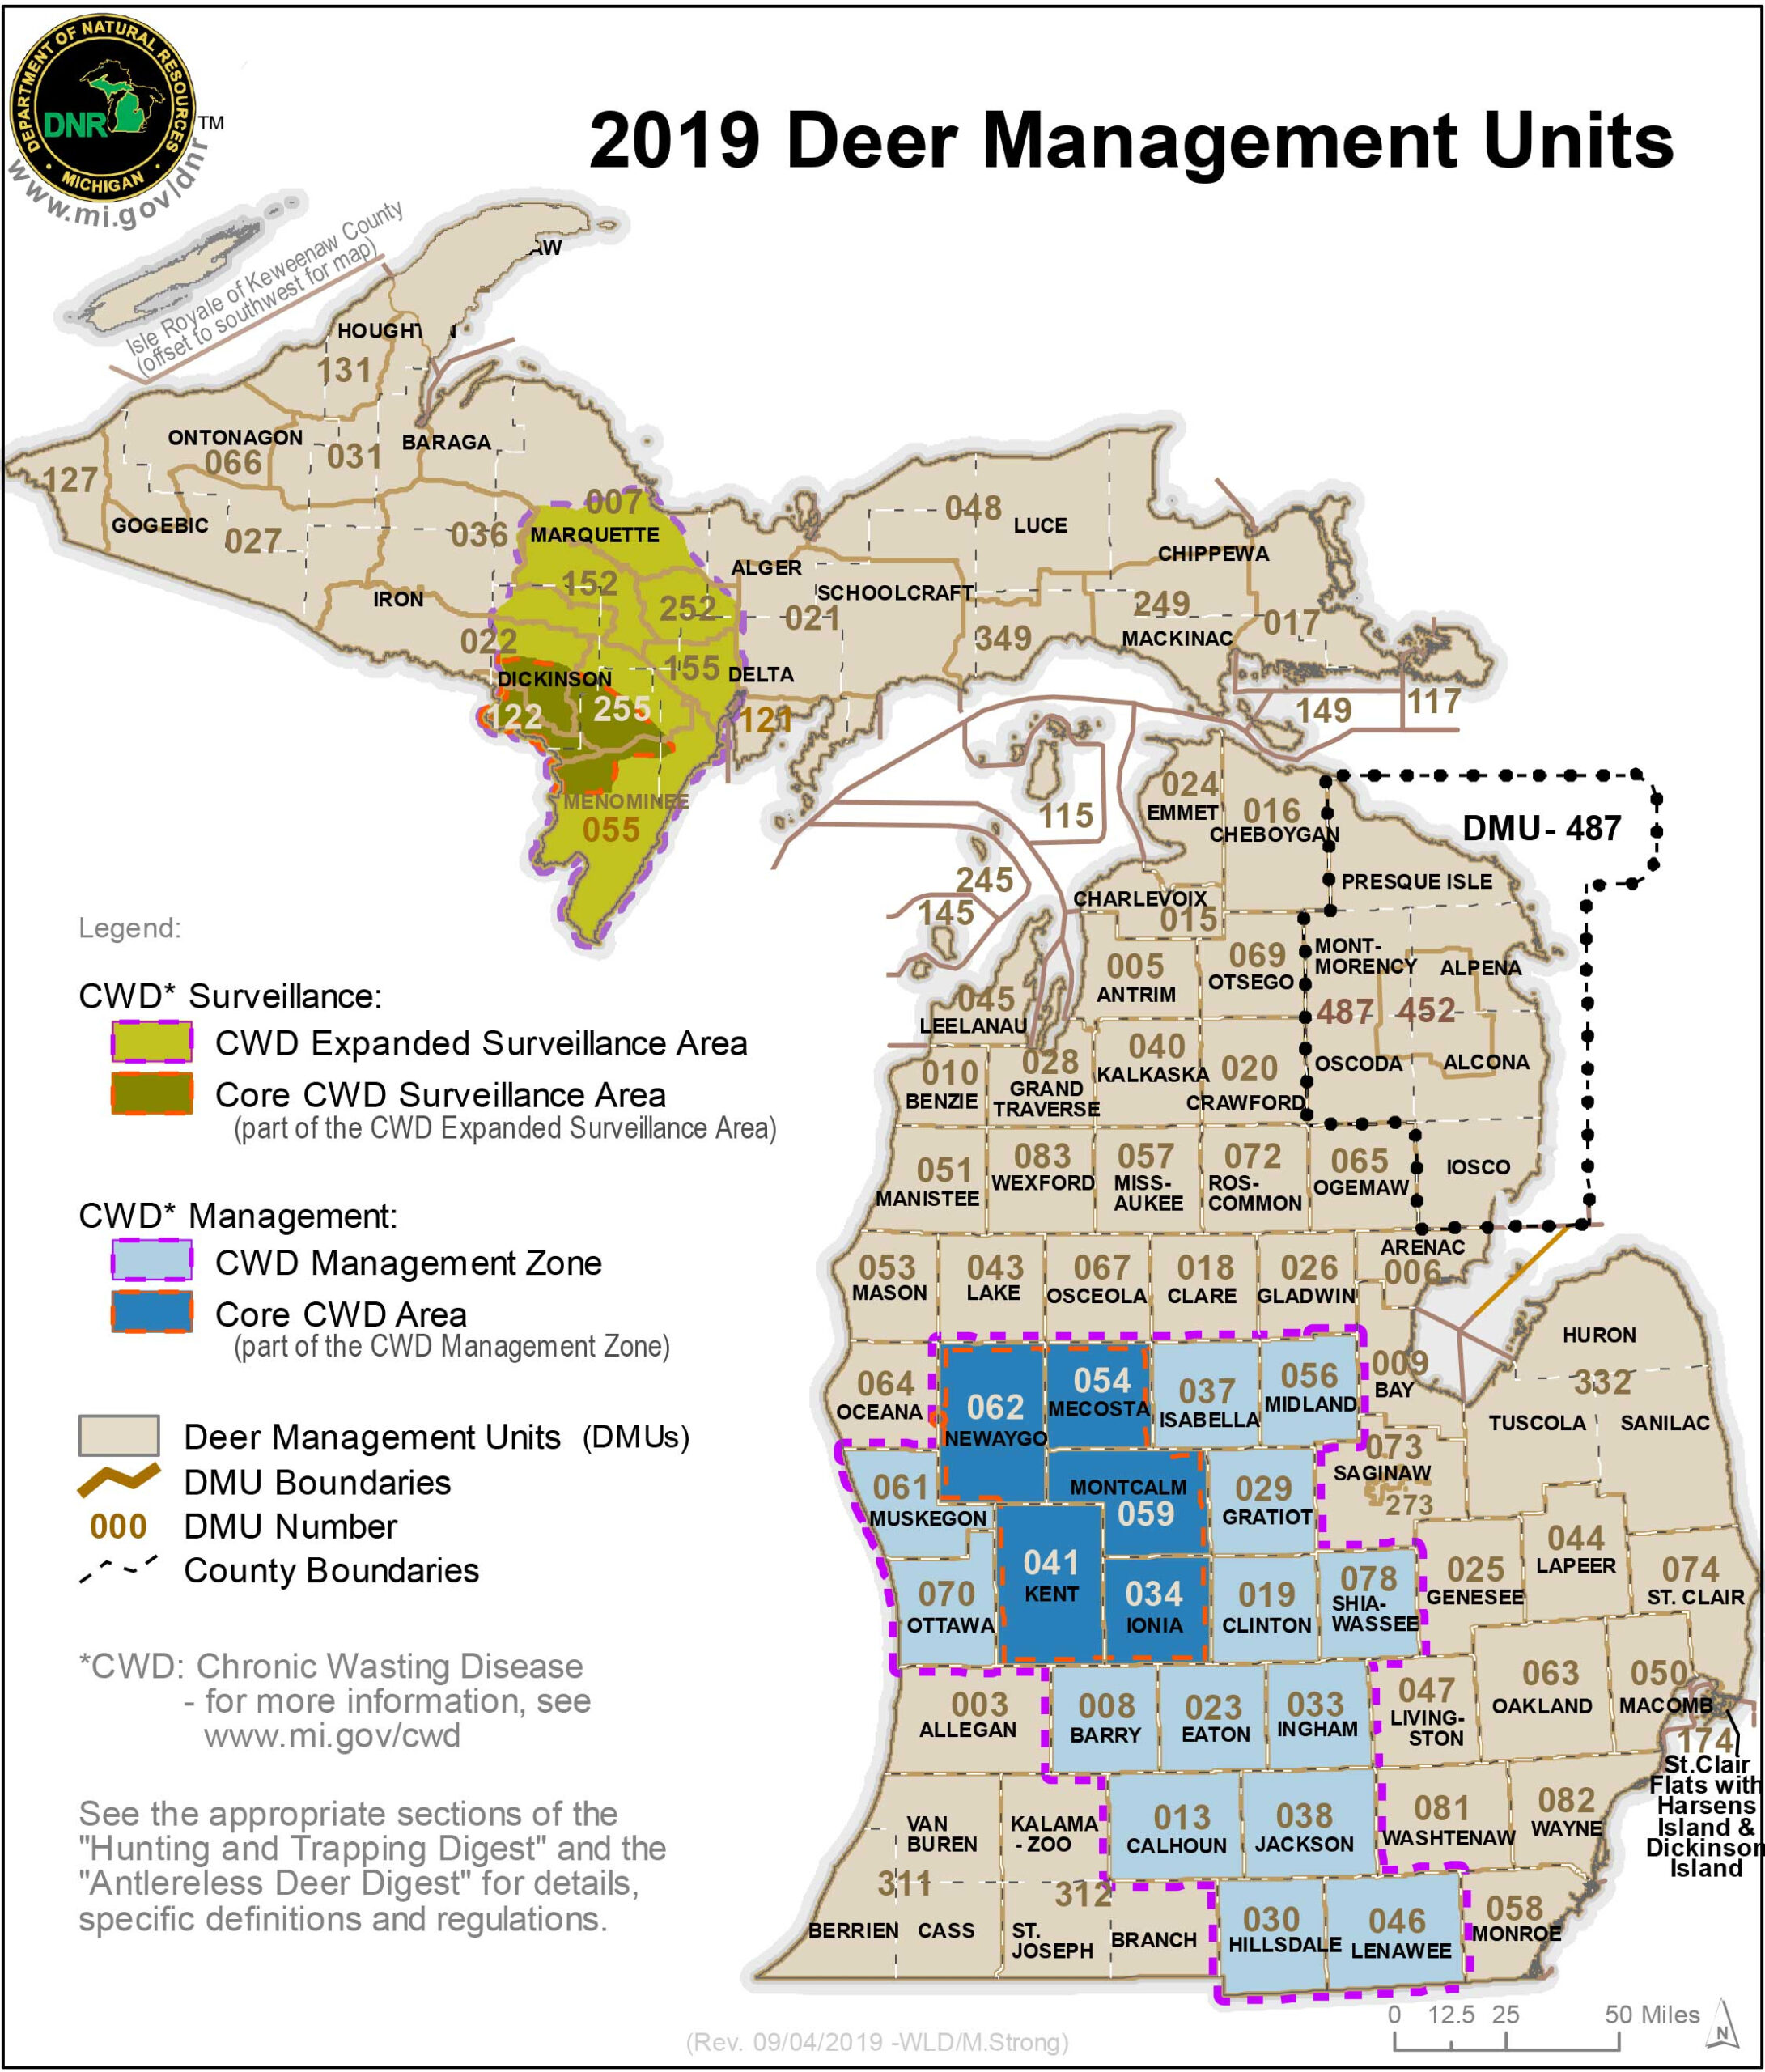 Michigan Deer Hunting Season Outlook within Michigan Deer Rut Calender